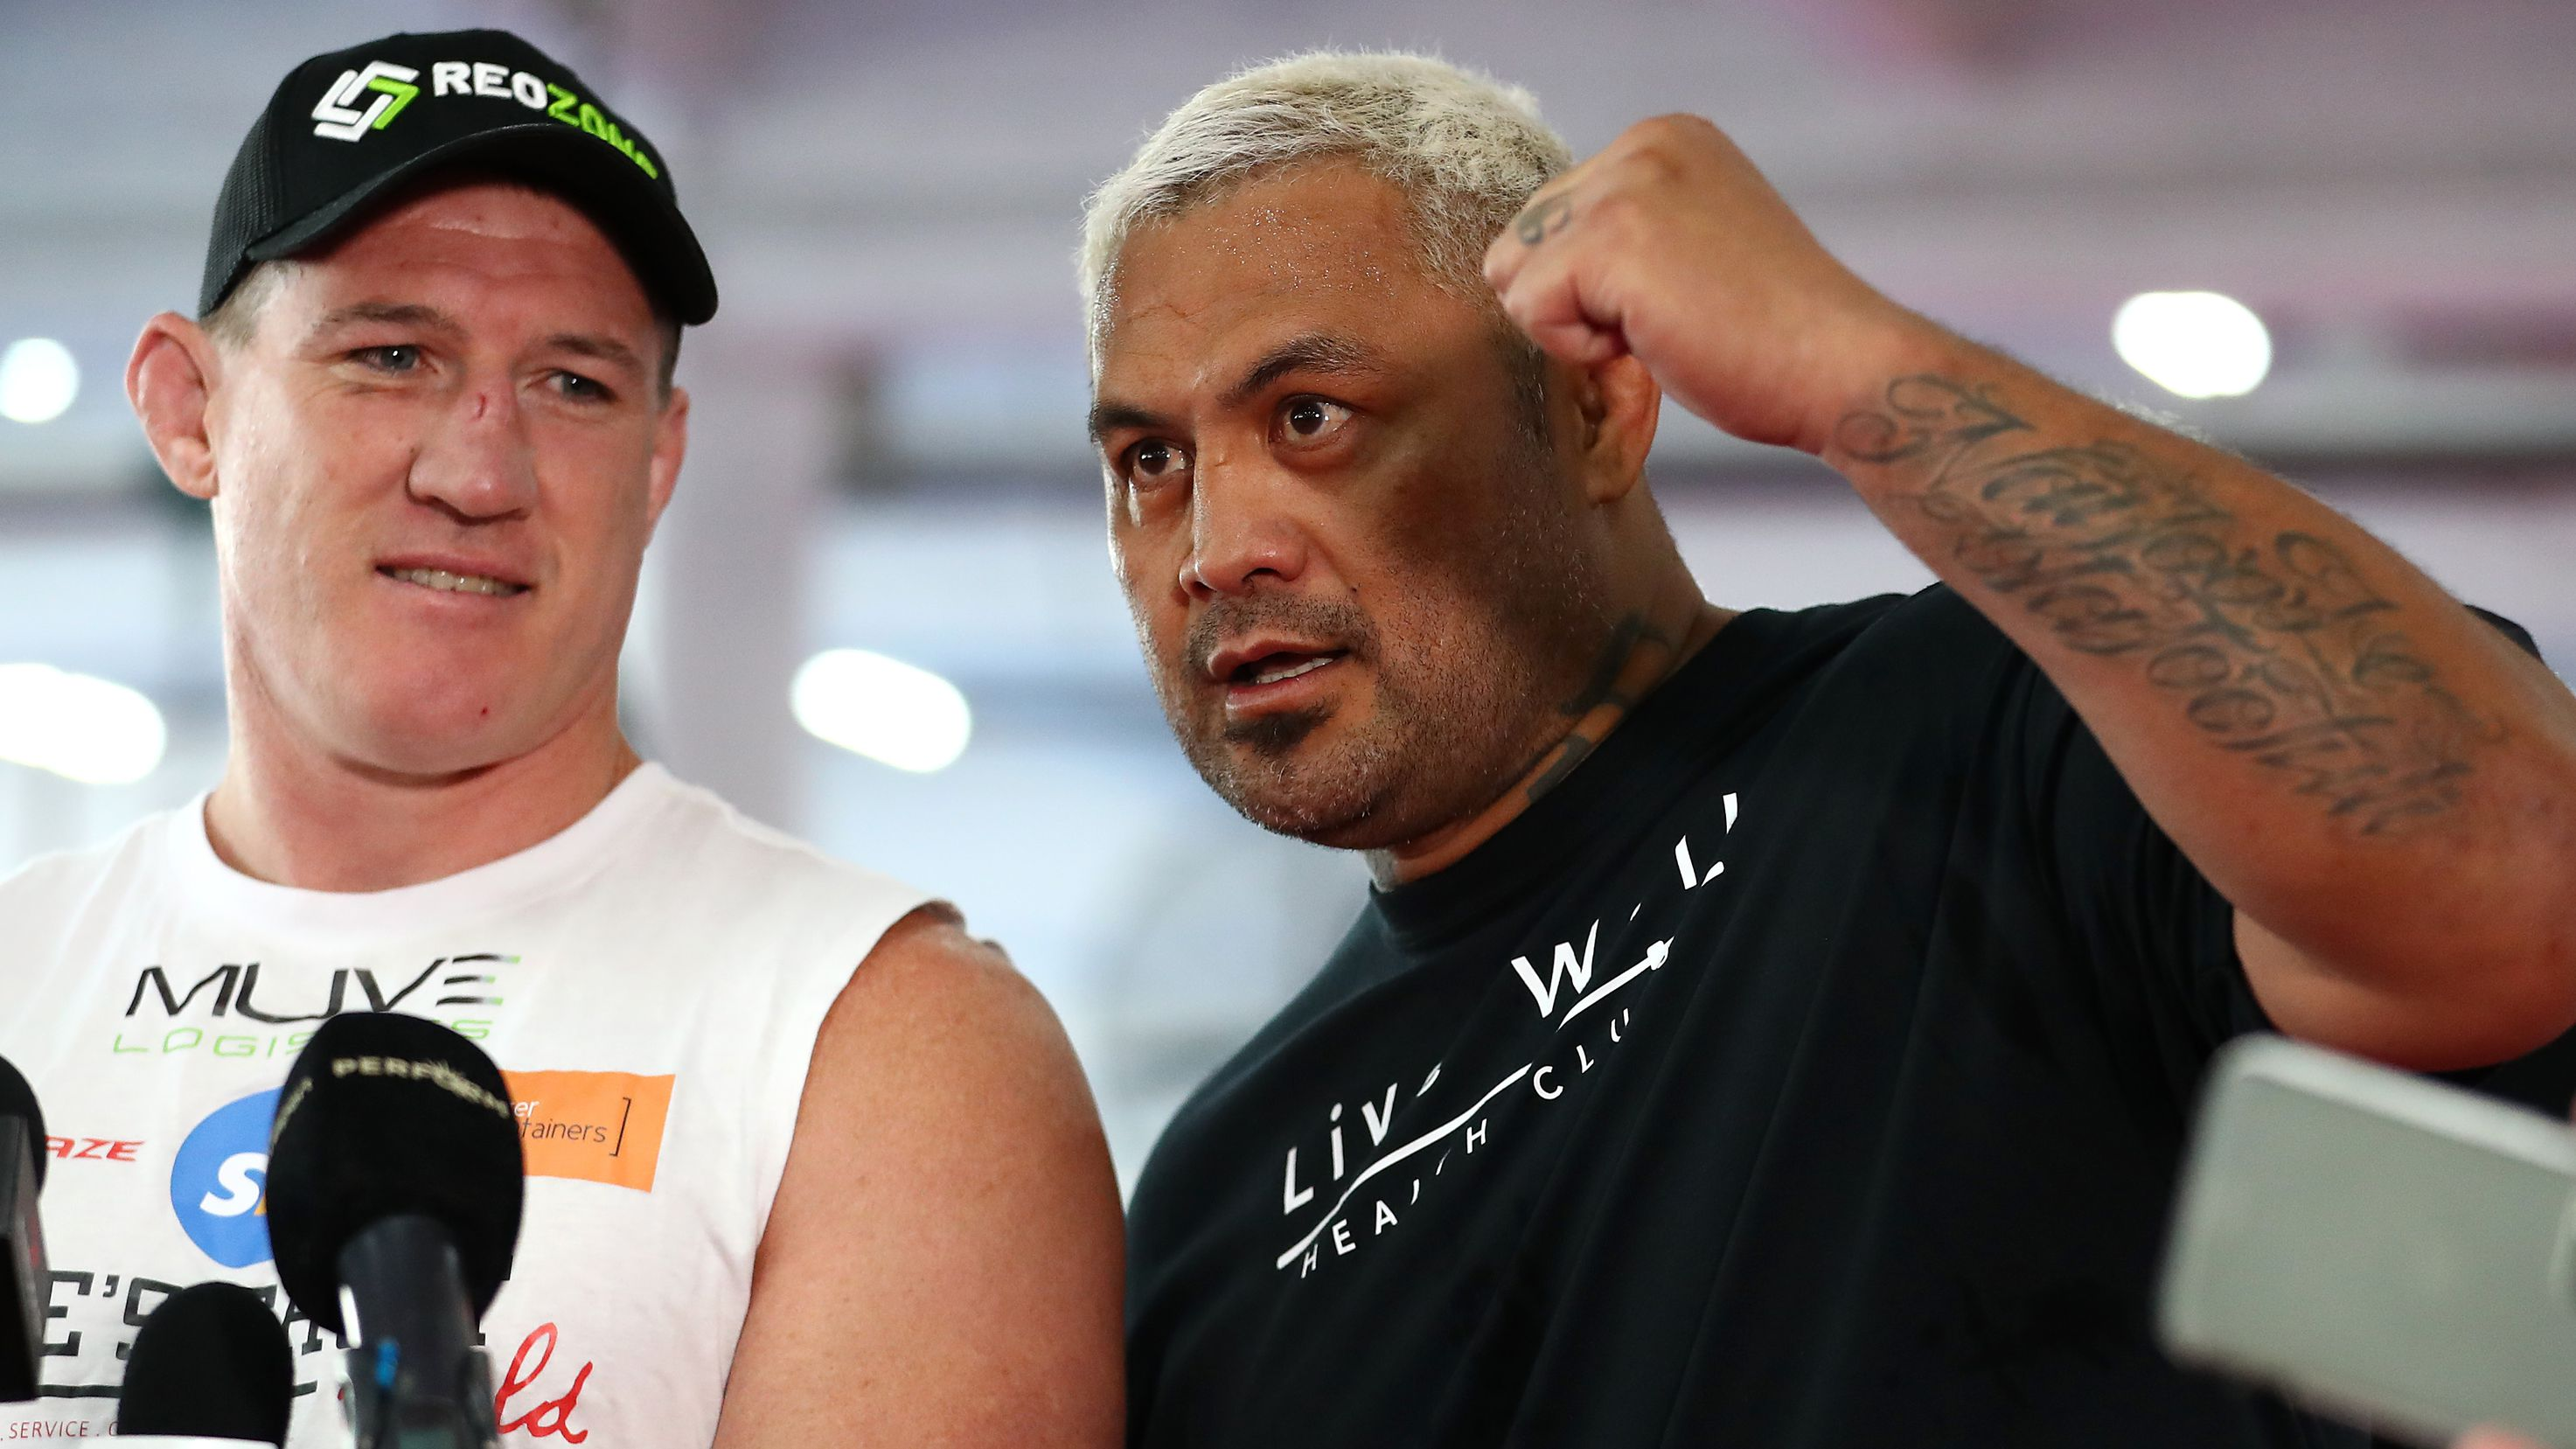 Mark Hunt interjects Paul Gallen during a media opportunity.